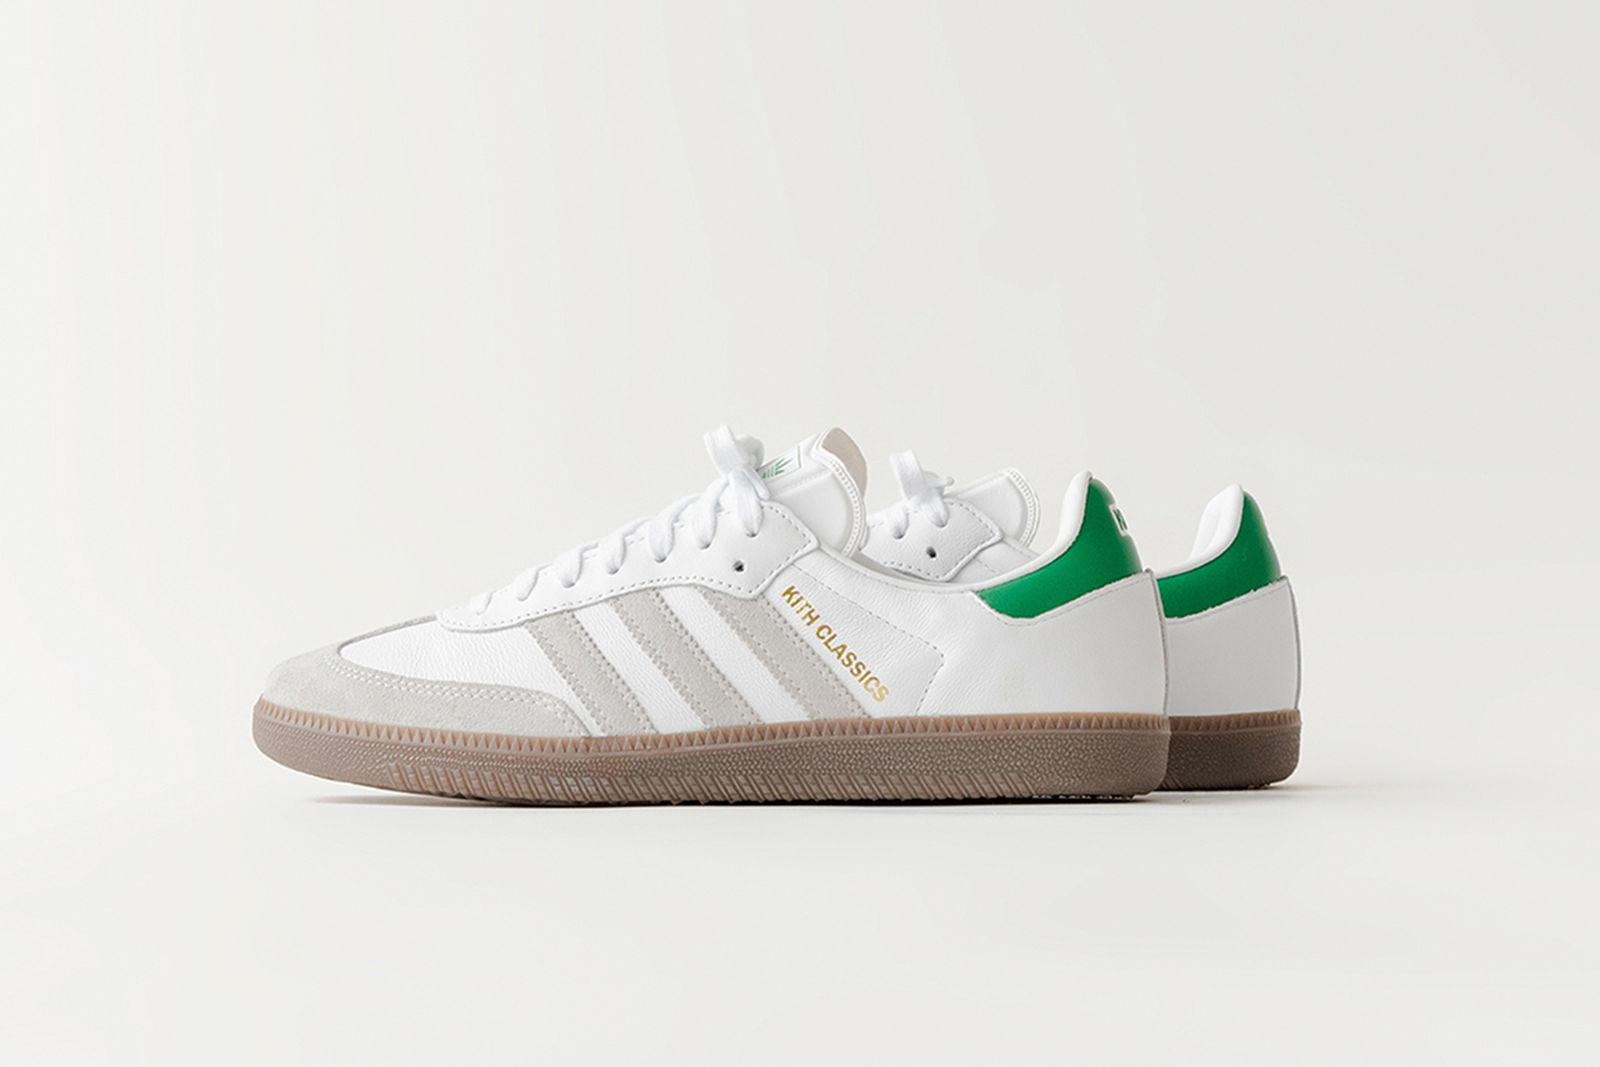 kith-adidas-summer-2021-release-info-21